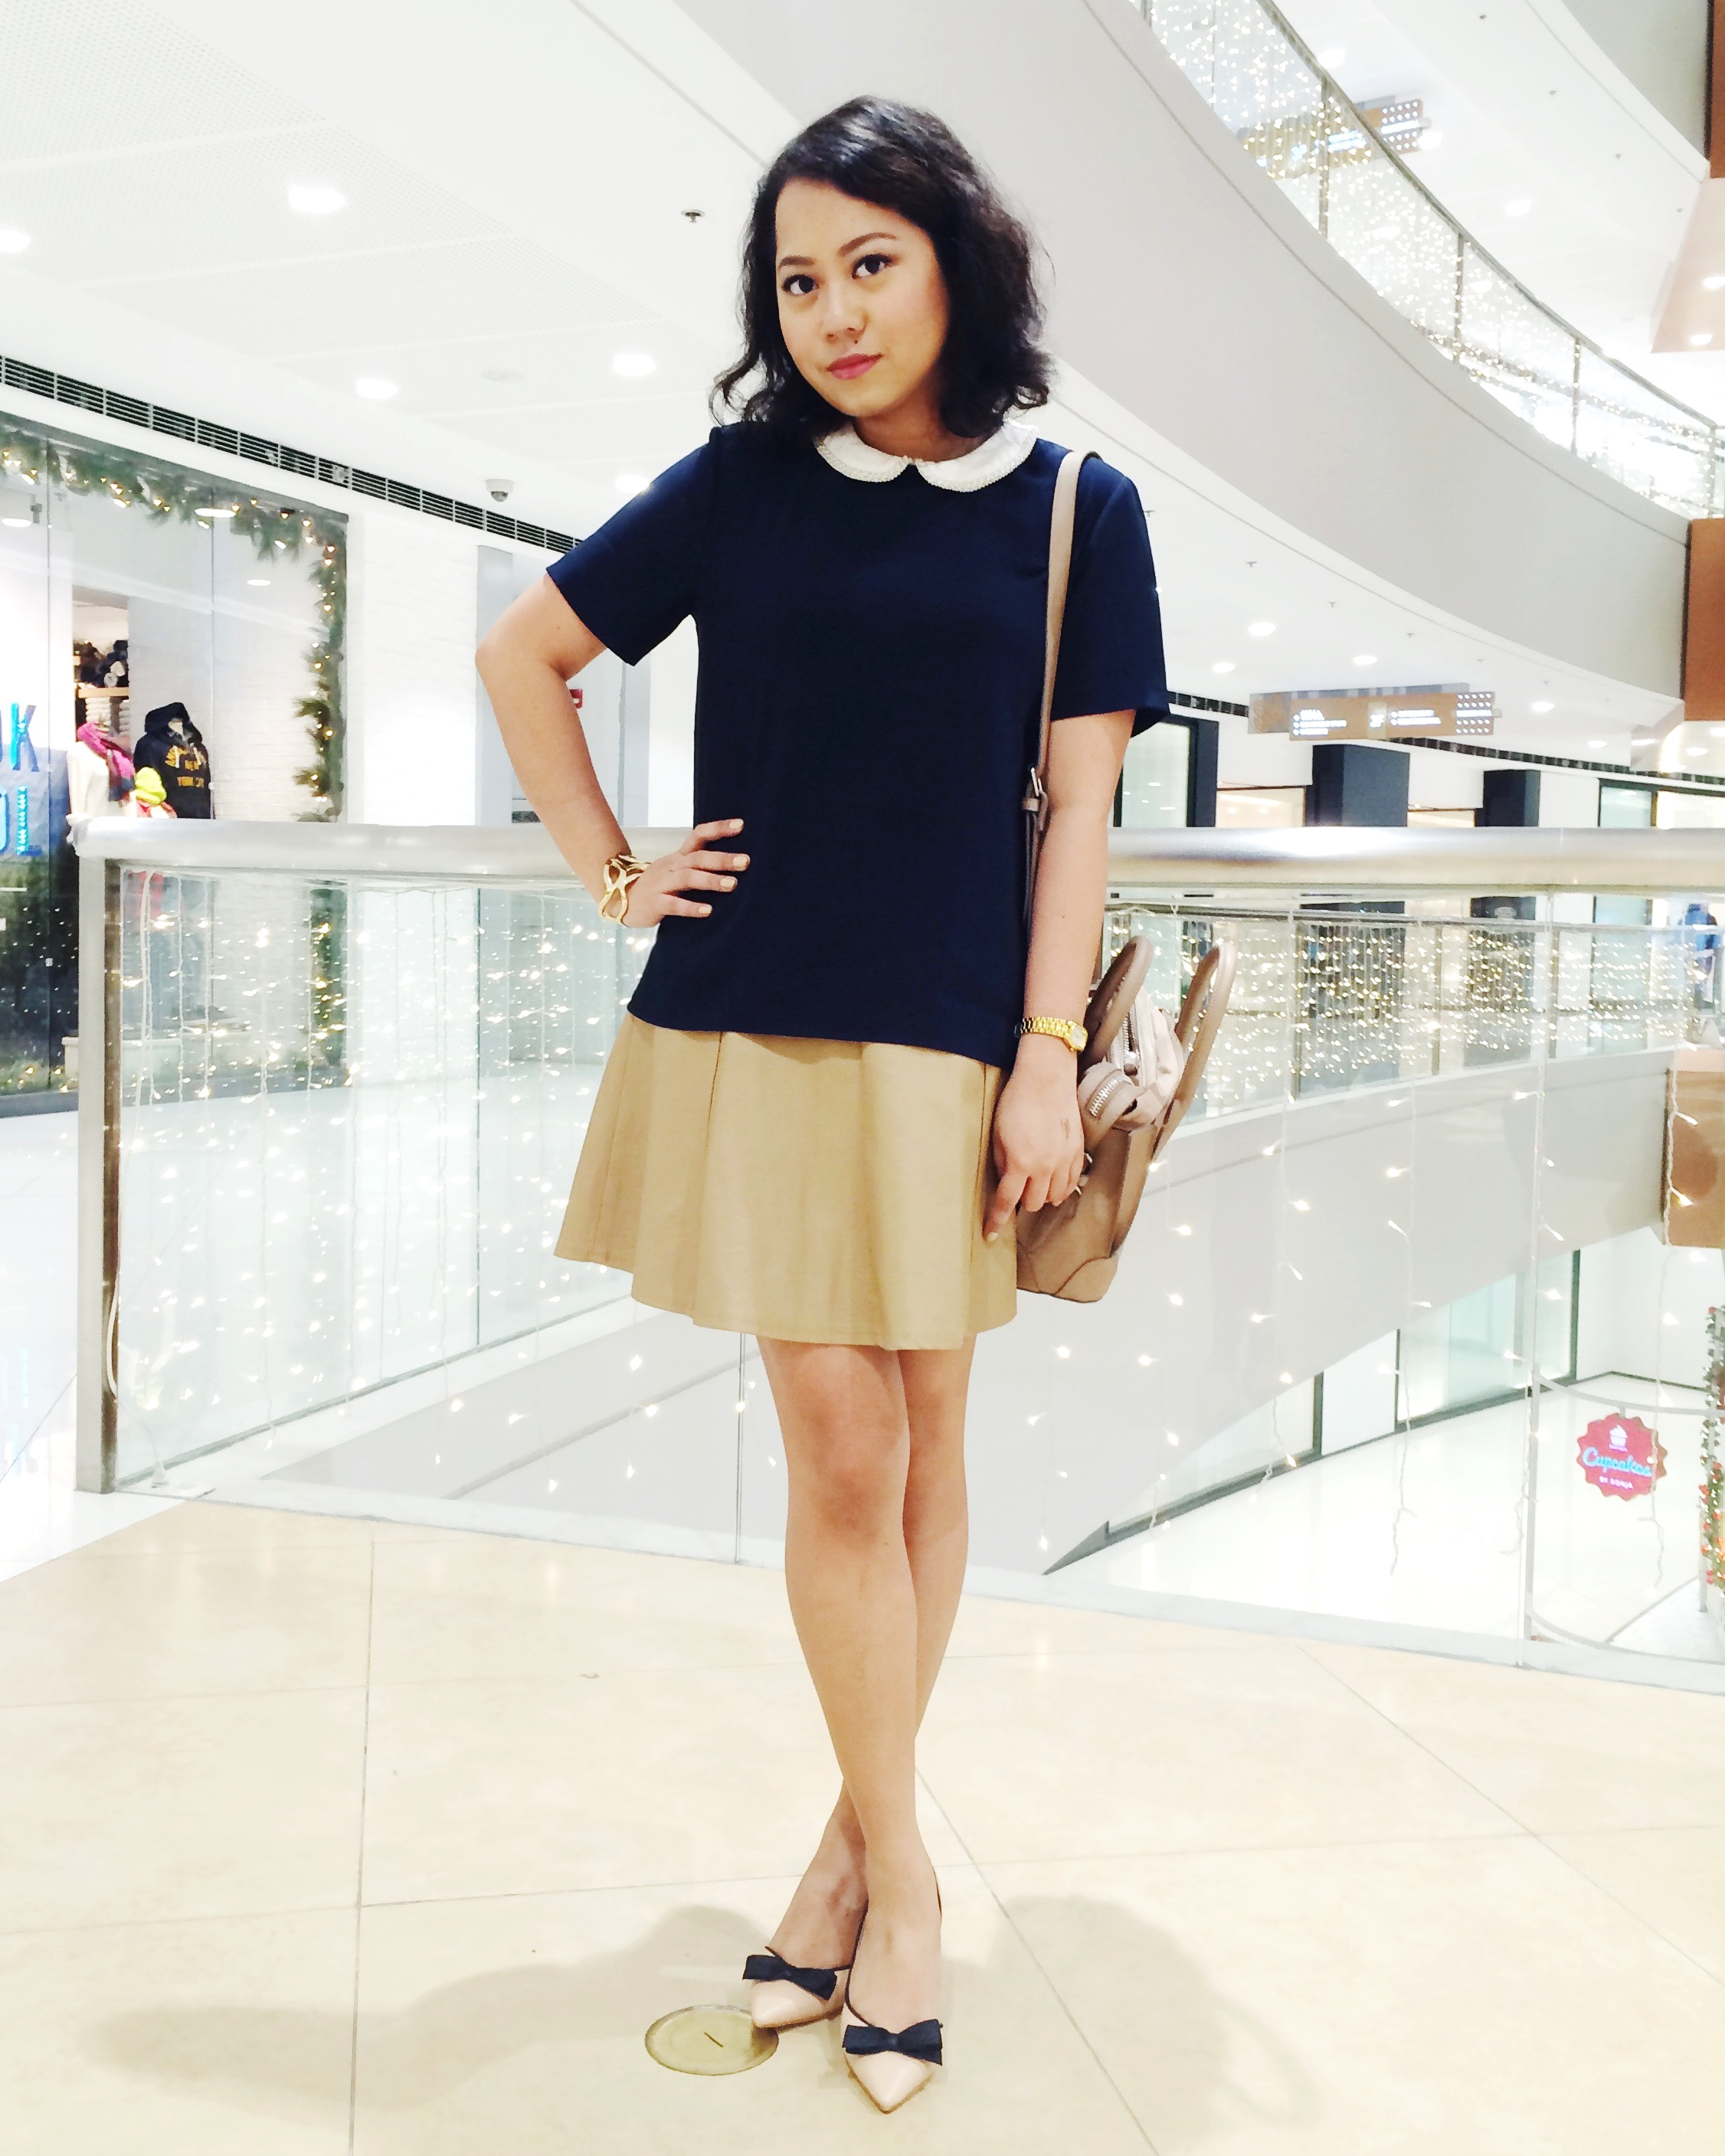 Top and satchel from ZARA / Skirt from Forever 21 / Kitten heels from parisian / Bangle from Pinkbox